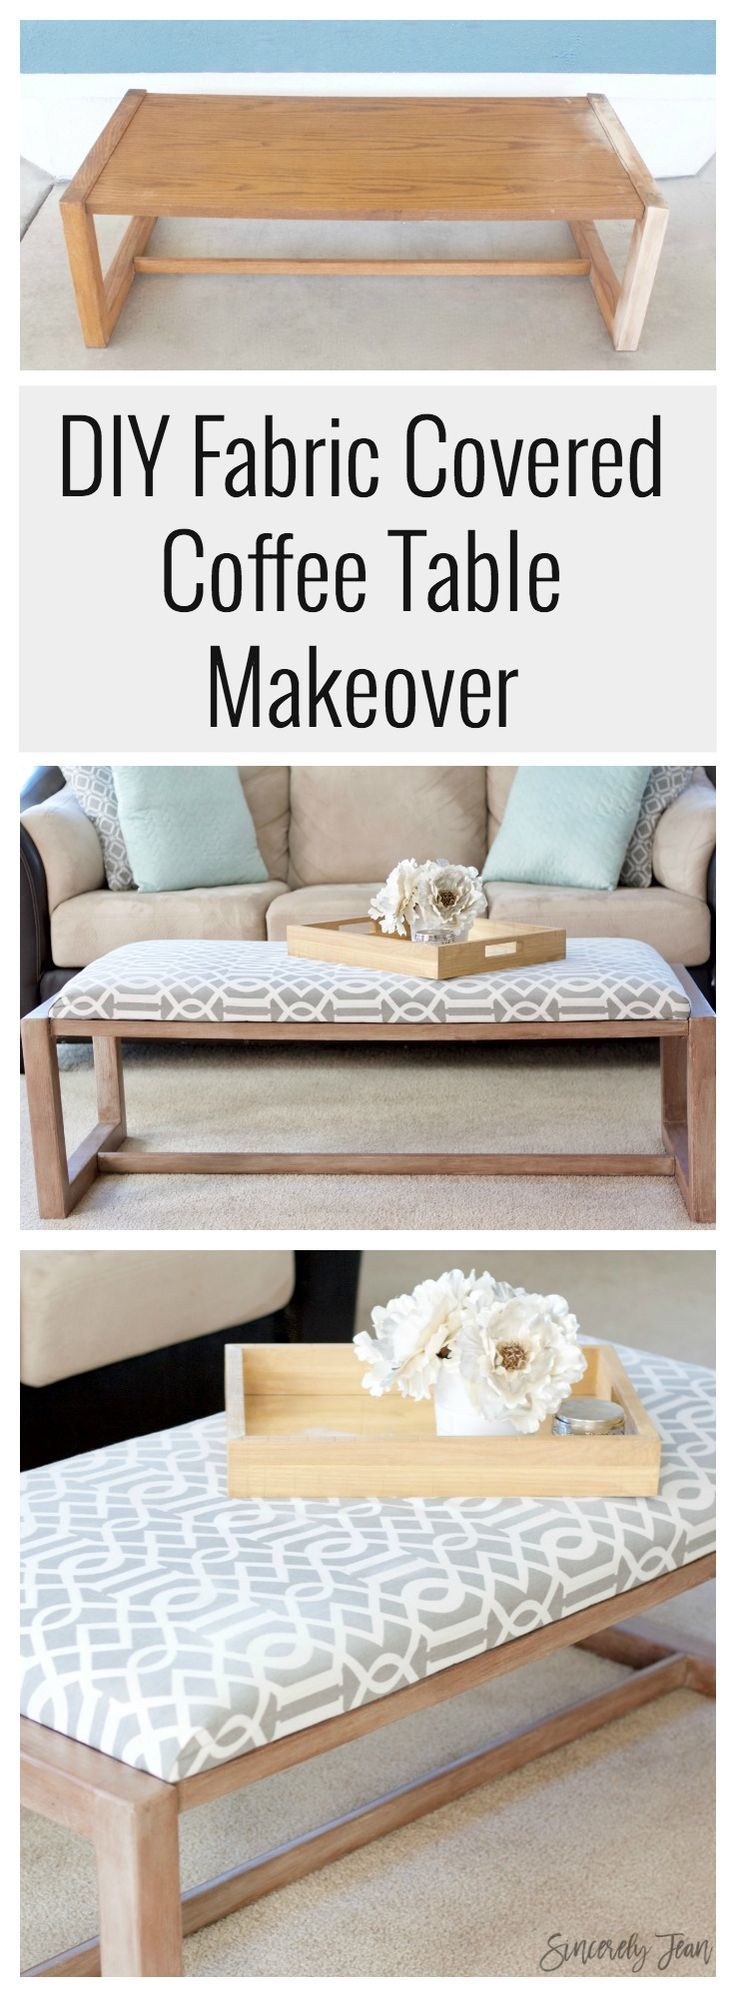 Diy Fabric Covered Coffee Table Makeover Coffee Table Makeover